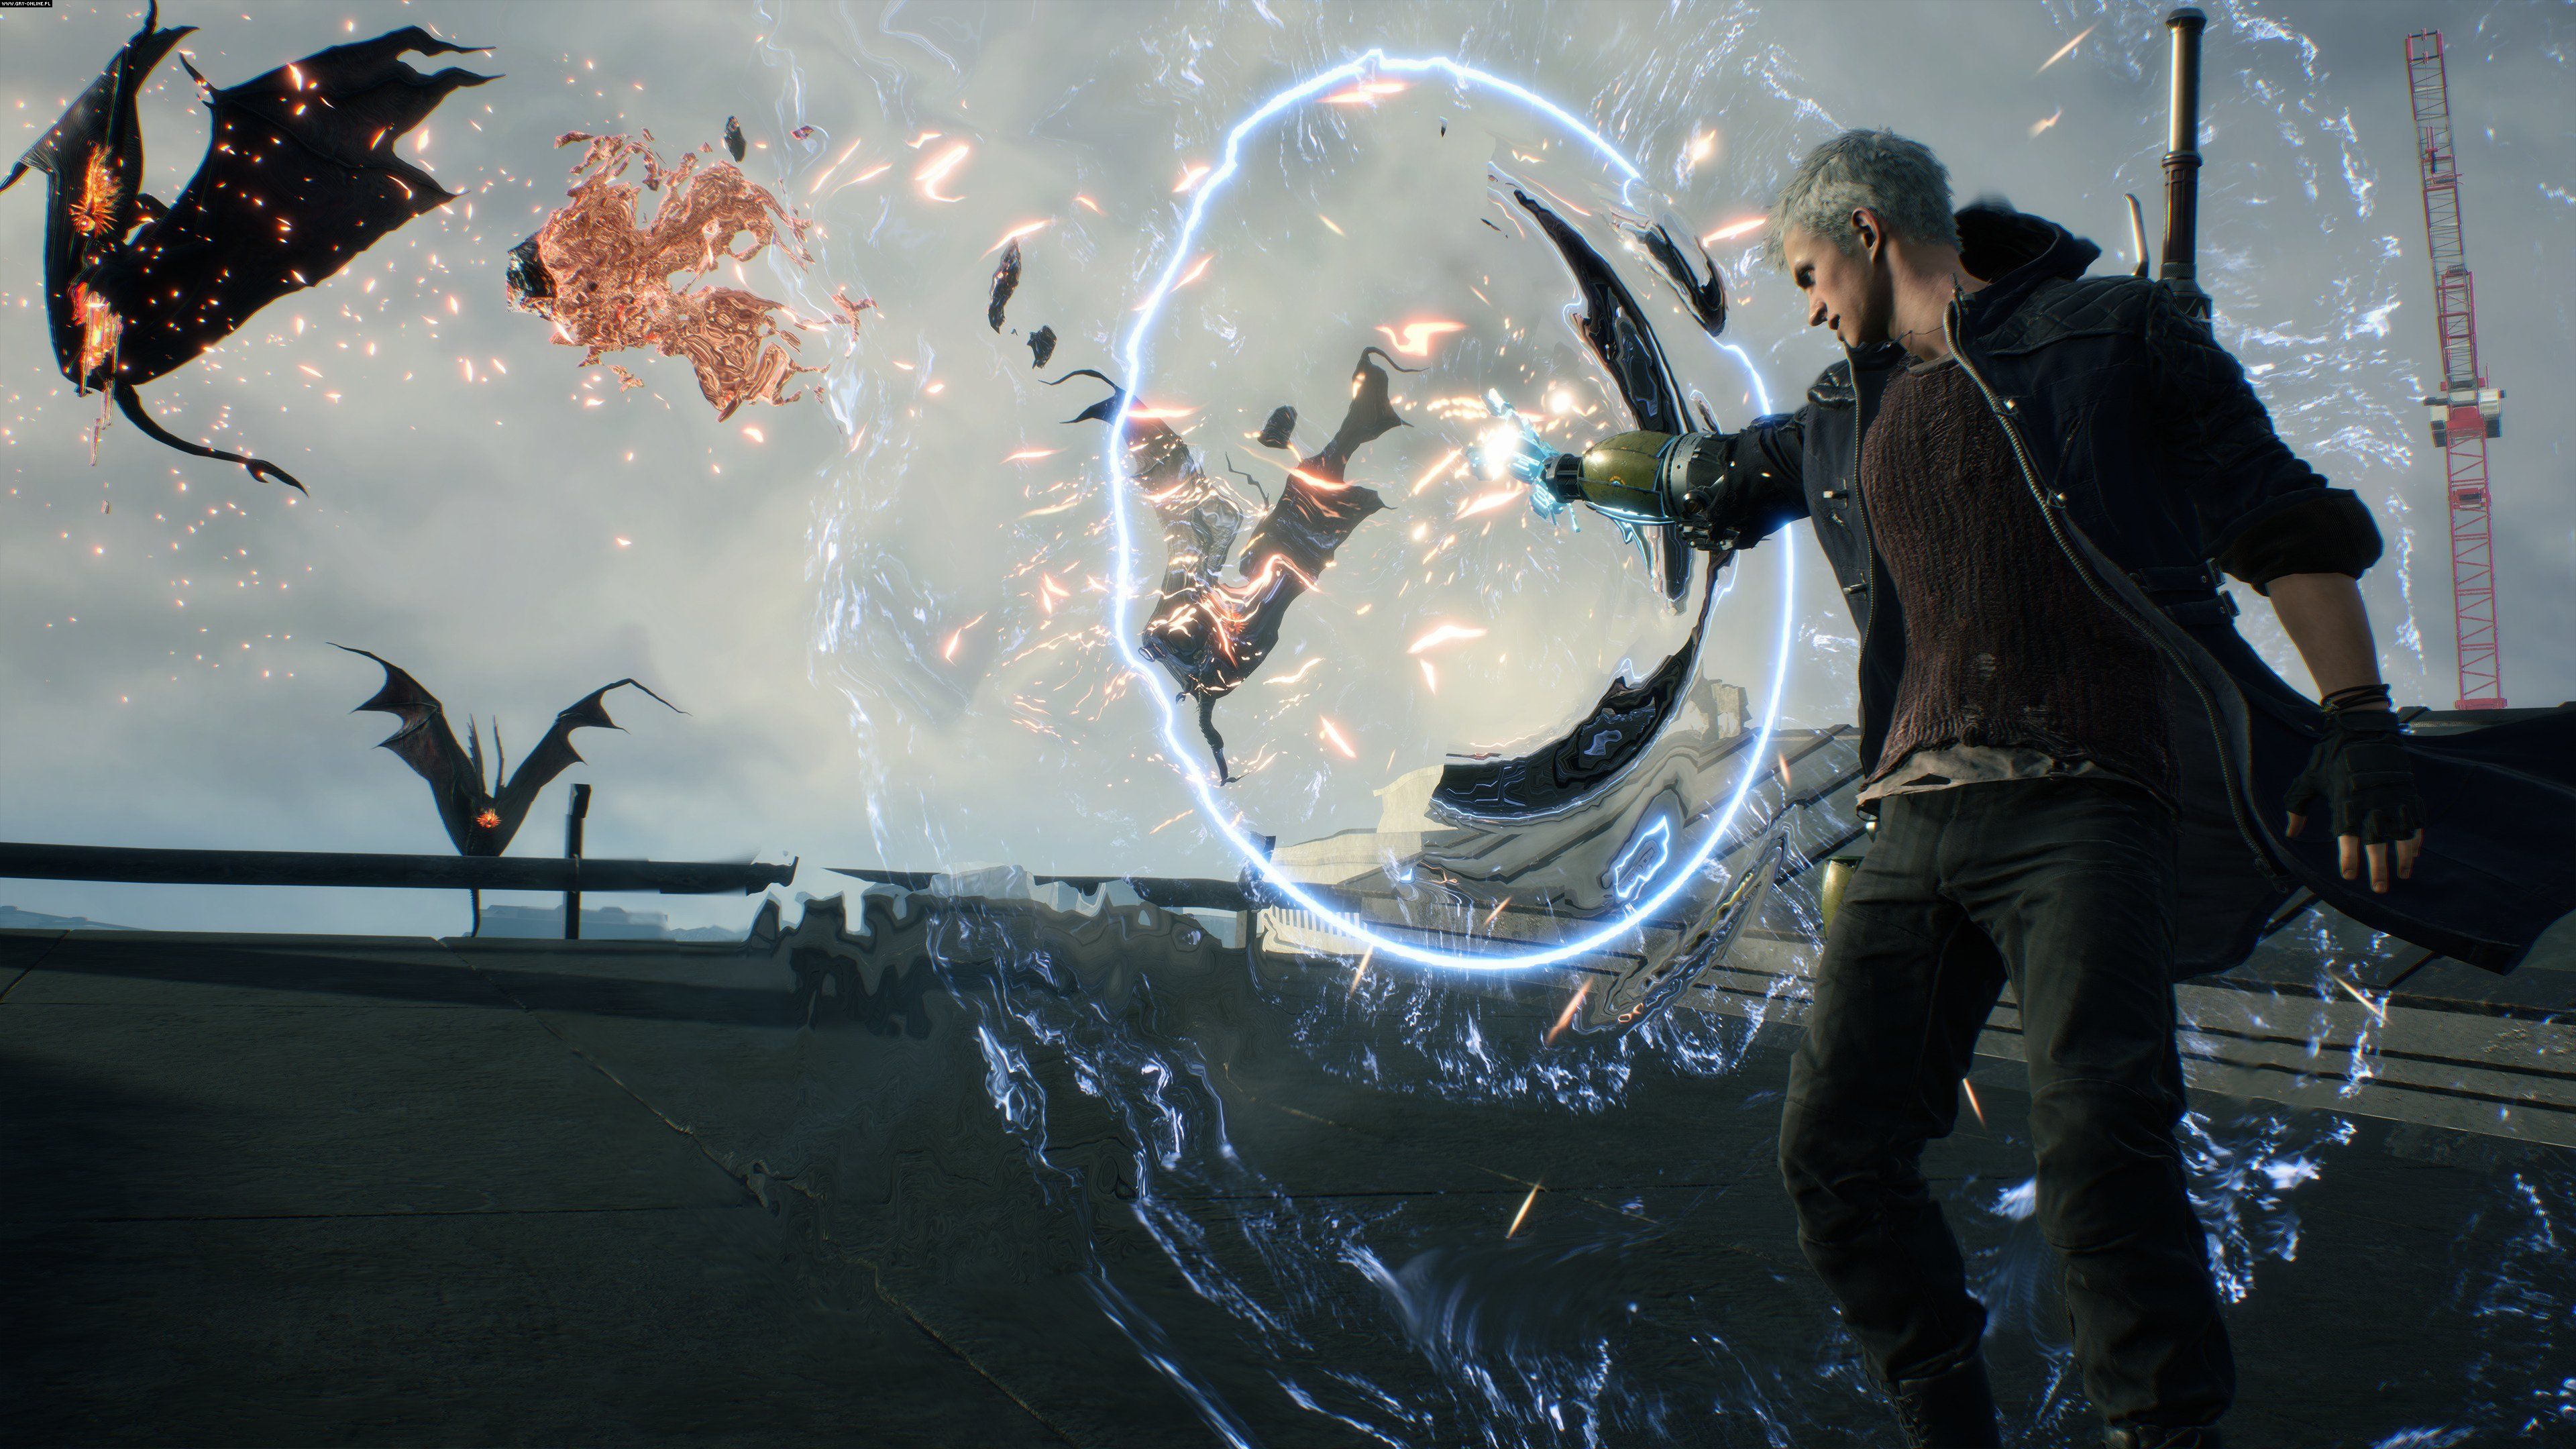 Devil May Cry 5 PC, PS4, XONE Games Image 75/81, Capcom